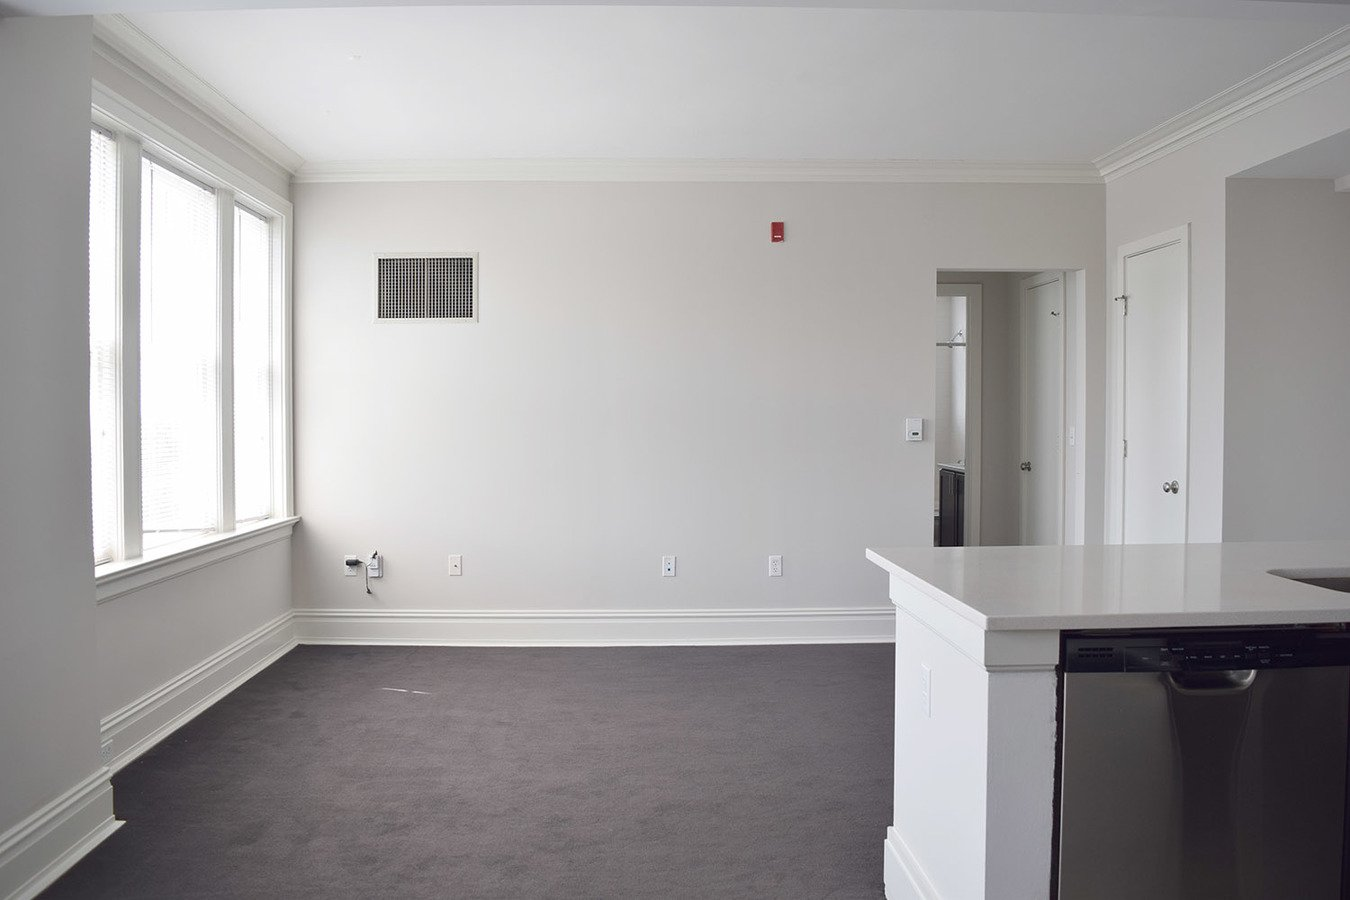 2 Bedrooms 1 Bathroom Apartment for rent at Bellerive in Kansas City, MO